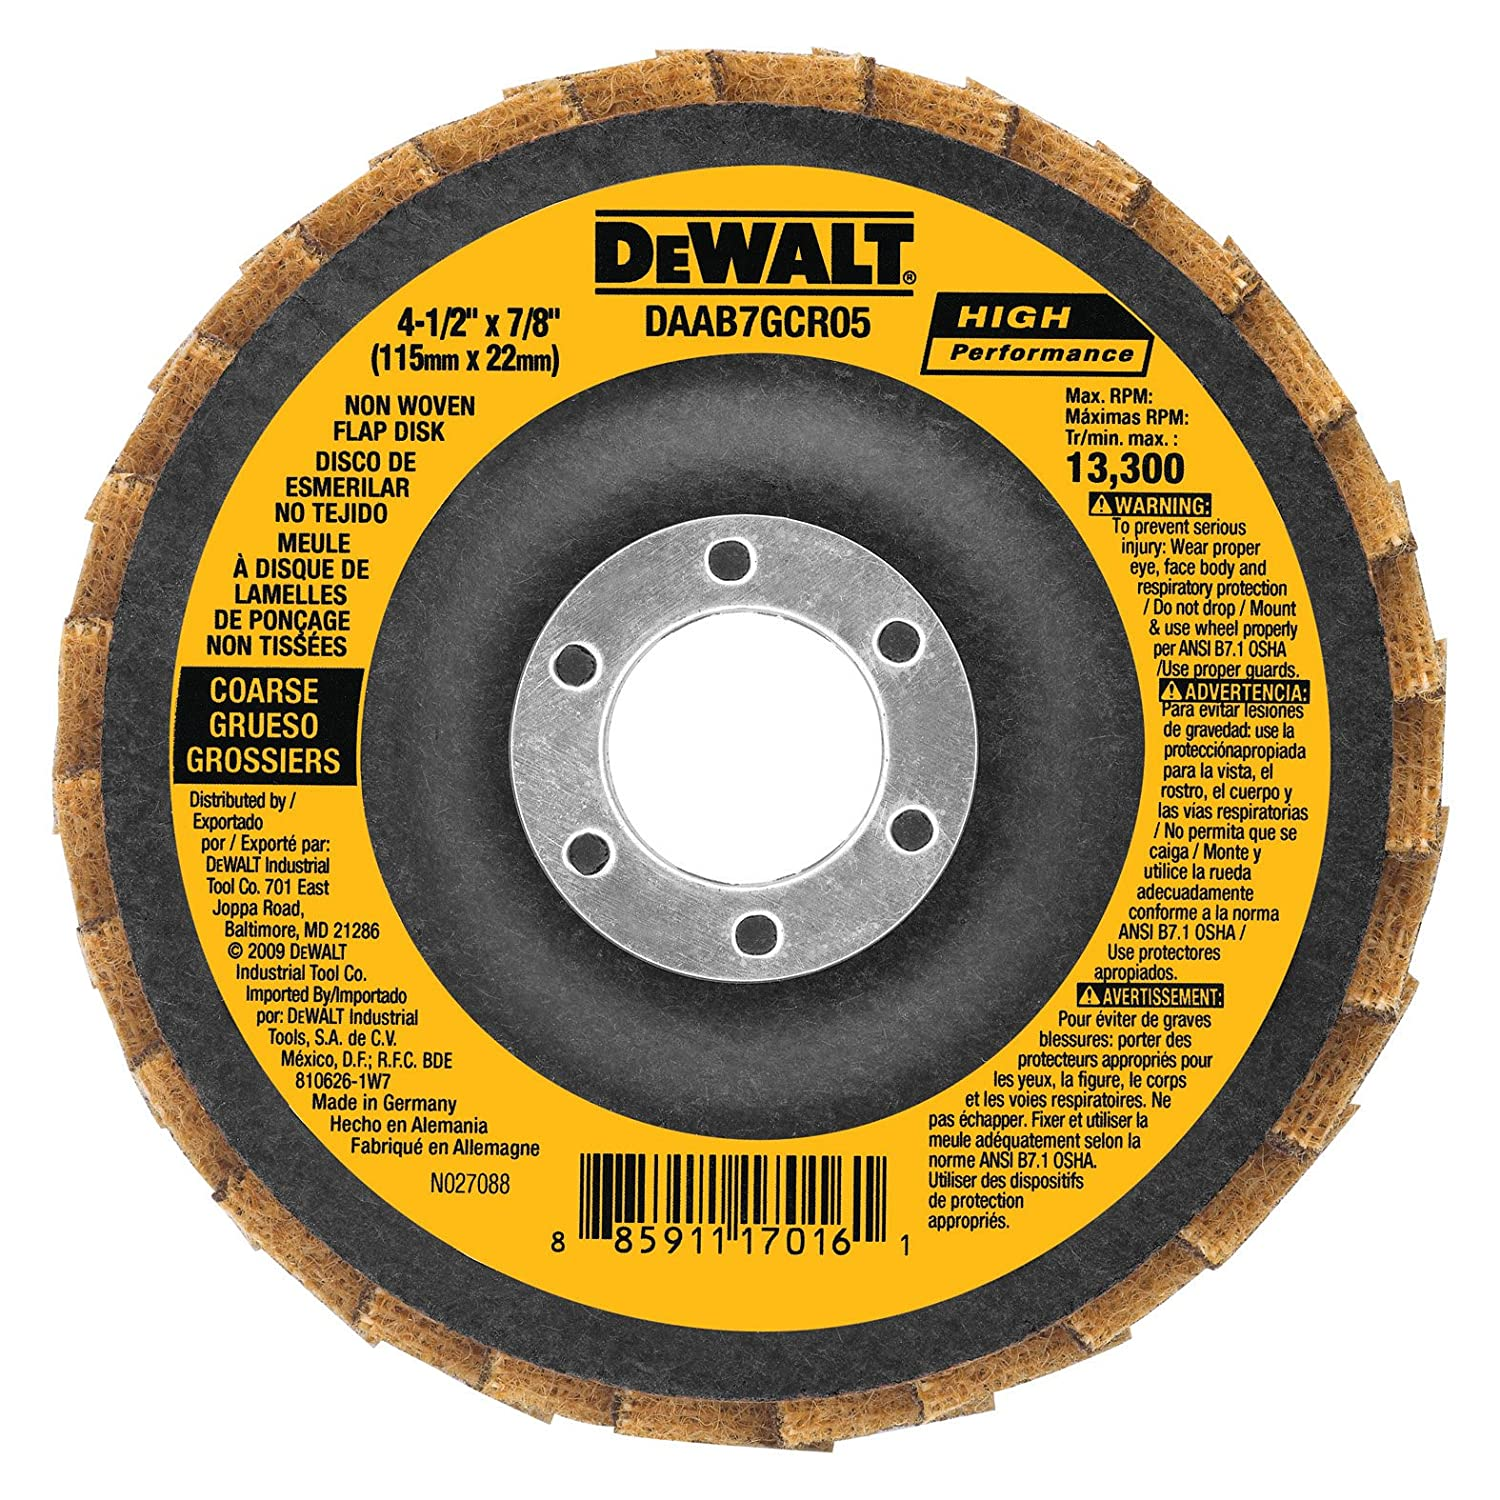 Amazon.com: DEWALT DAAB7GCR05 4-1/2-Inch by 7/8-Inch course non woven flap disc: Home Improvement